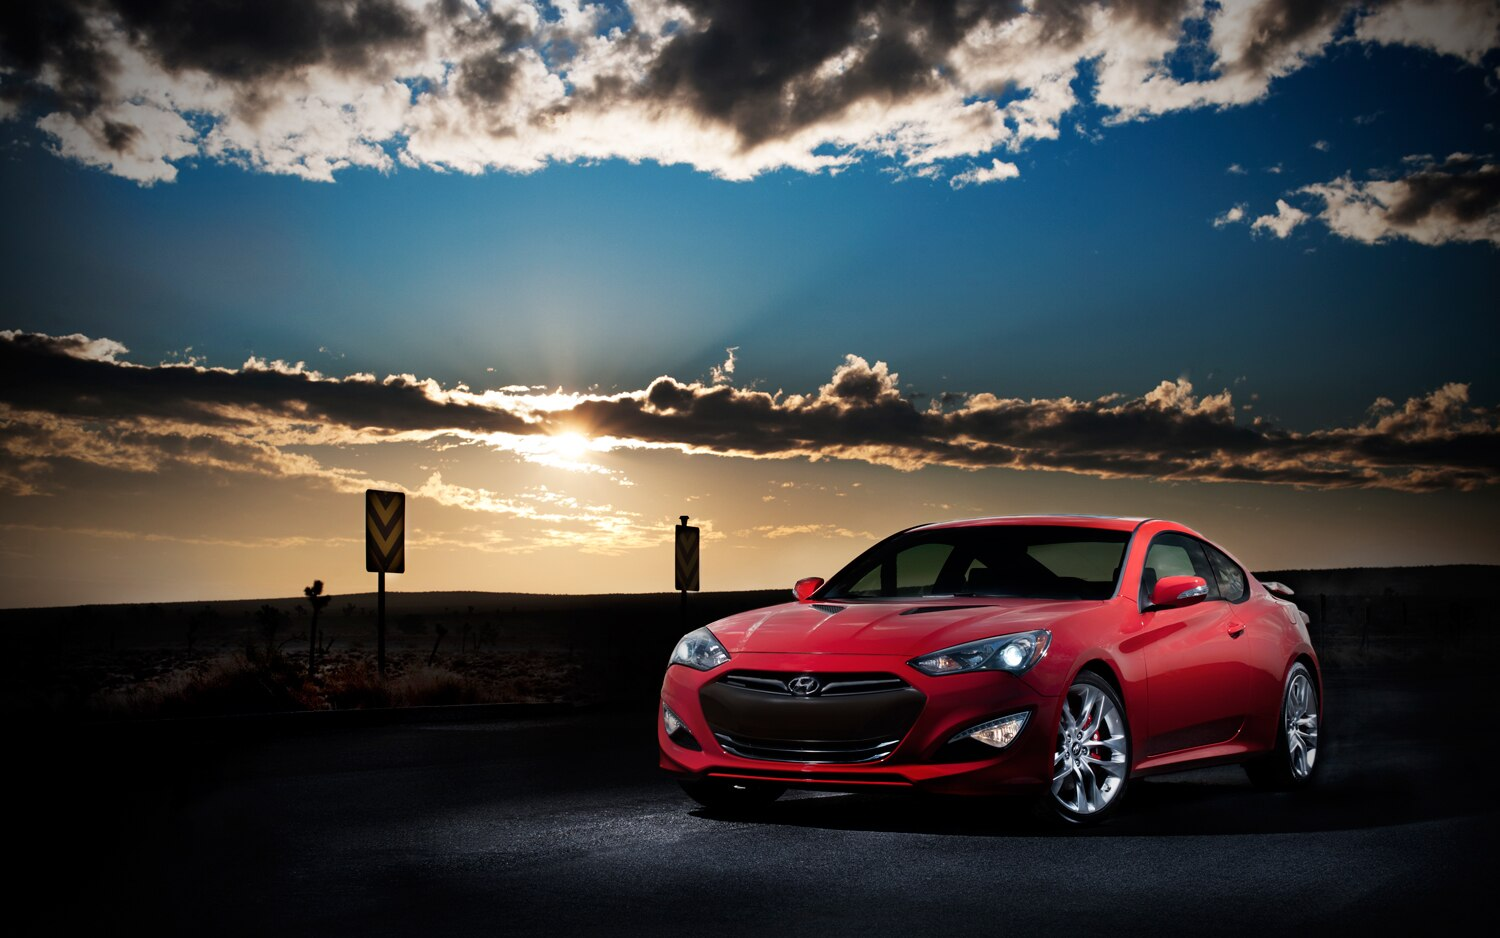 2013 Hyundai Genesis Coupe Front Left Side View 21